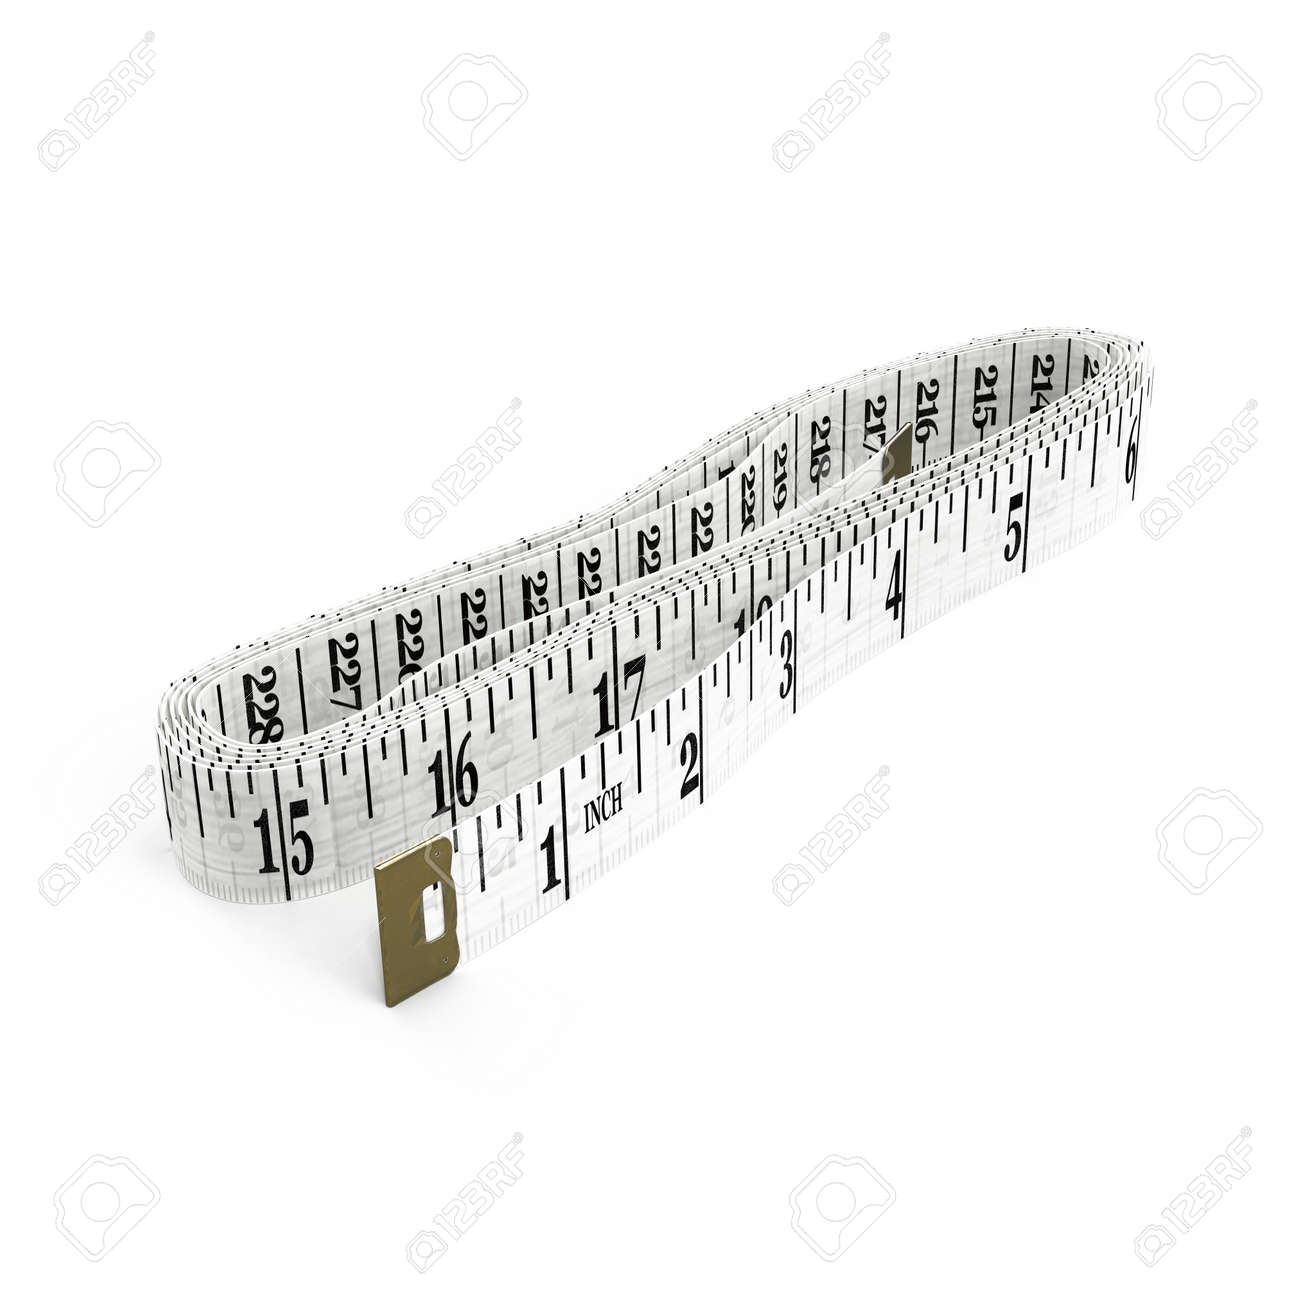 Tailor measuring tape with soft shadowasurements of lengthmeter illustration tailor measuring tape with soft shadowasurements of lengthmeter for the tailorcloseupwhite background 3d illustration ccuart Gallery